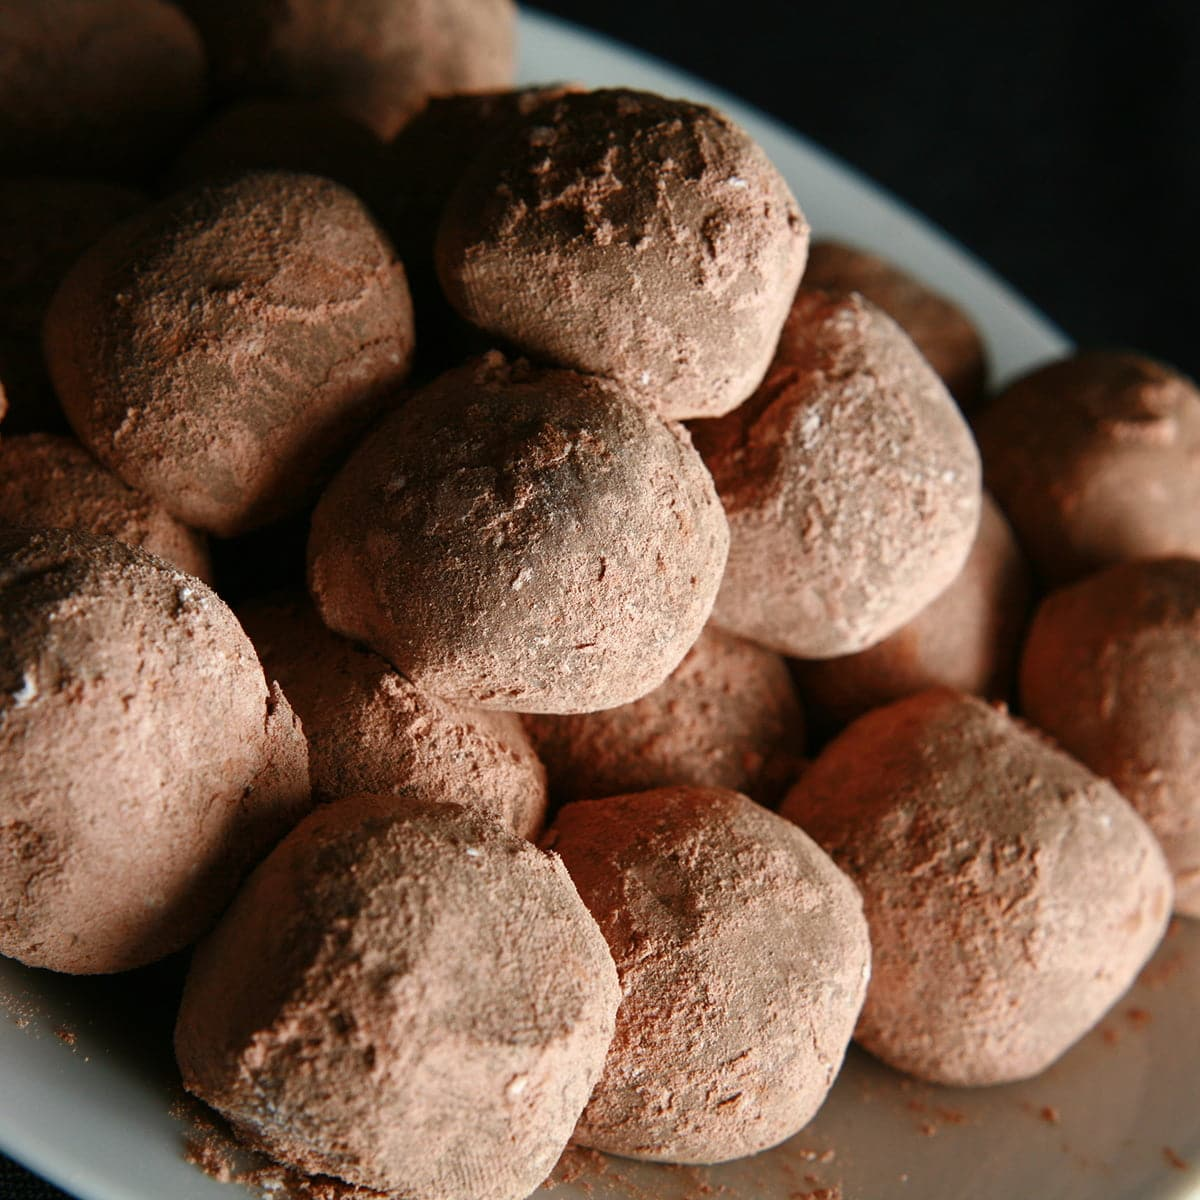 A small plate with a pile of cocoa-coated milk chocolate truffles.